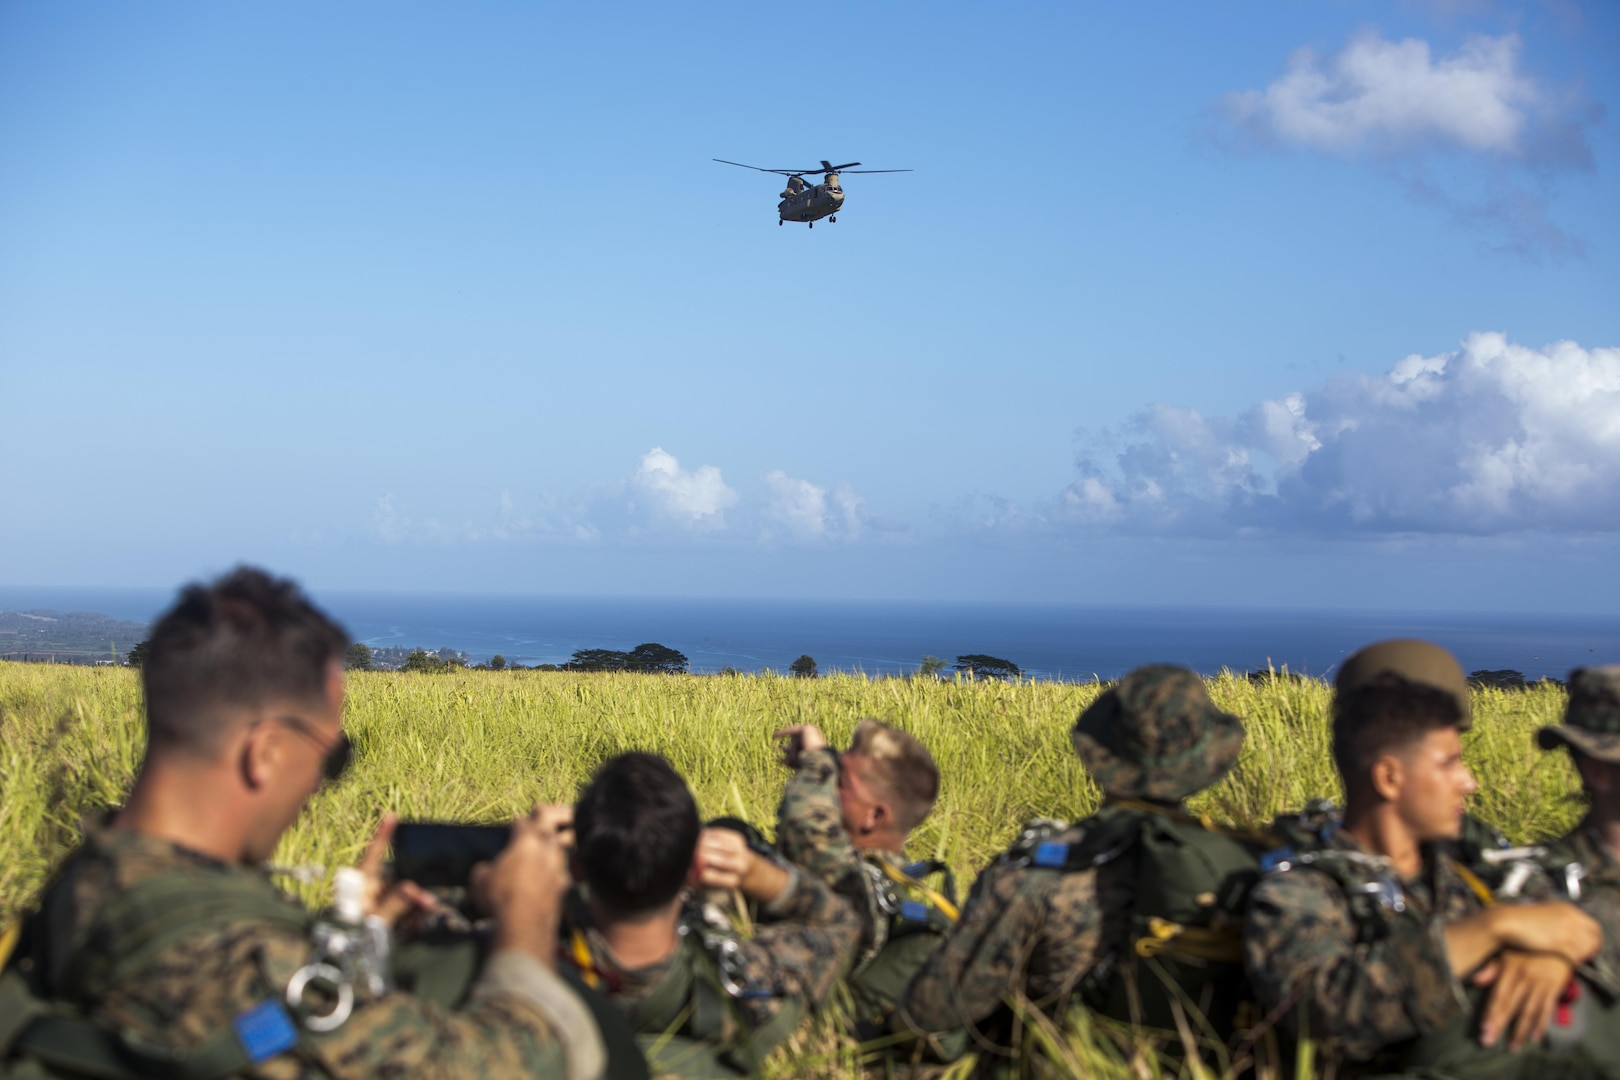 SCHOFIELD BARRACKS – A CH-47 Chinook helicopter approaches Marines with 4th Force Reconnaissance Company to conduct a static line airborne jump at Schofield Barracks, July 14, 2017. The Marines trained with U.S. Army Special Forces to maintain proficiency in completing static line and high altitude free fall airborne jumps. (U.S. Marine Corps photo by Lance Cpl. Isabelo Tabanguil)